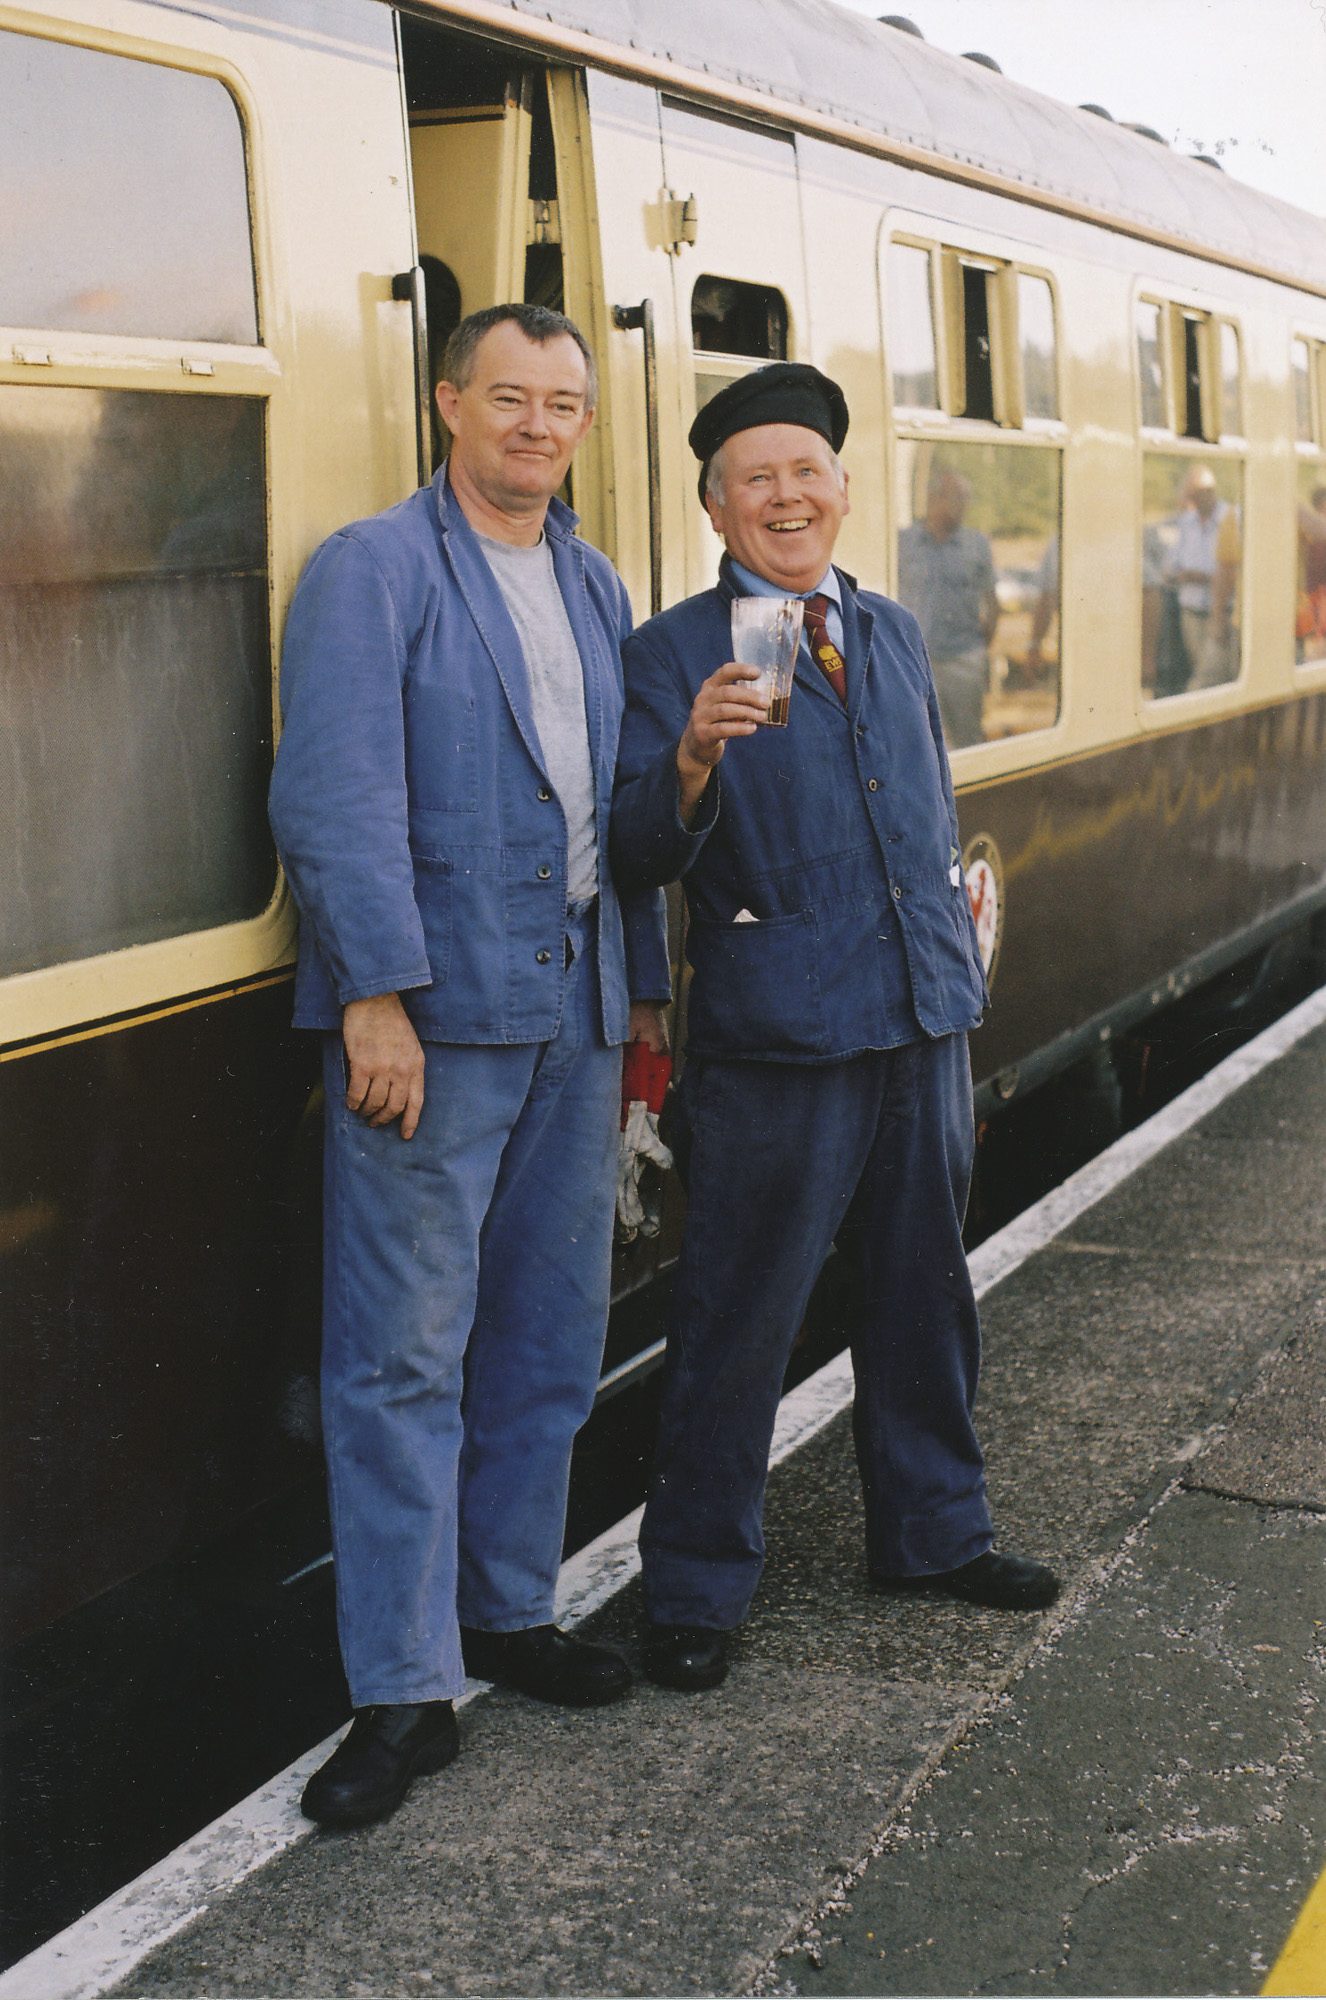 Fred Lewis and Tom Rees. © Bob Robson/6024PS Ltd